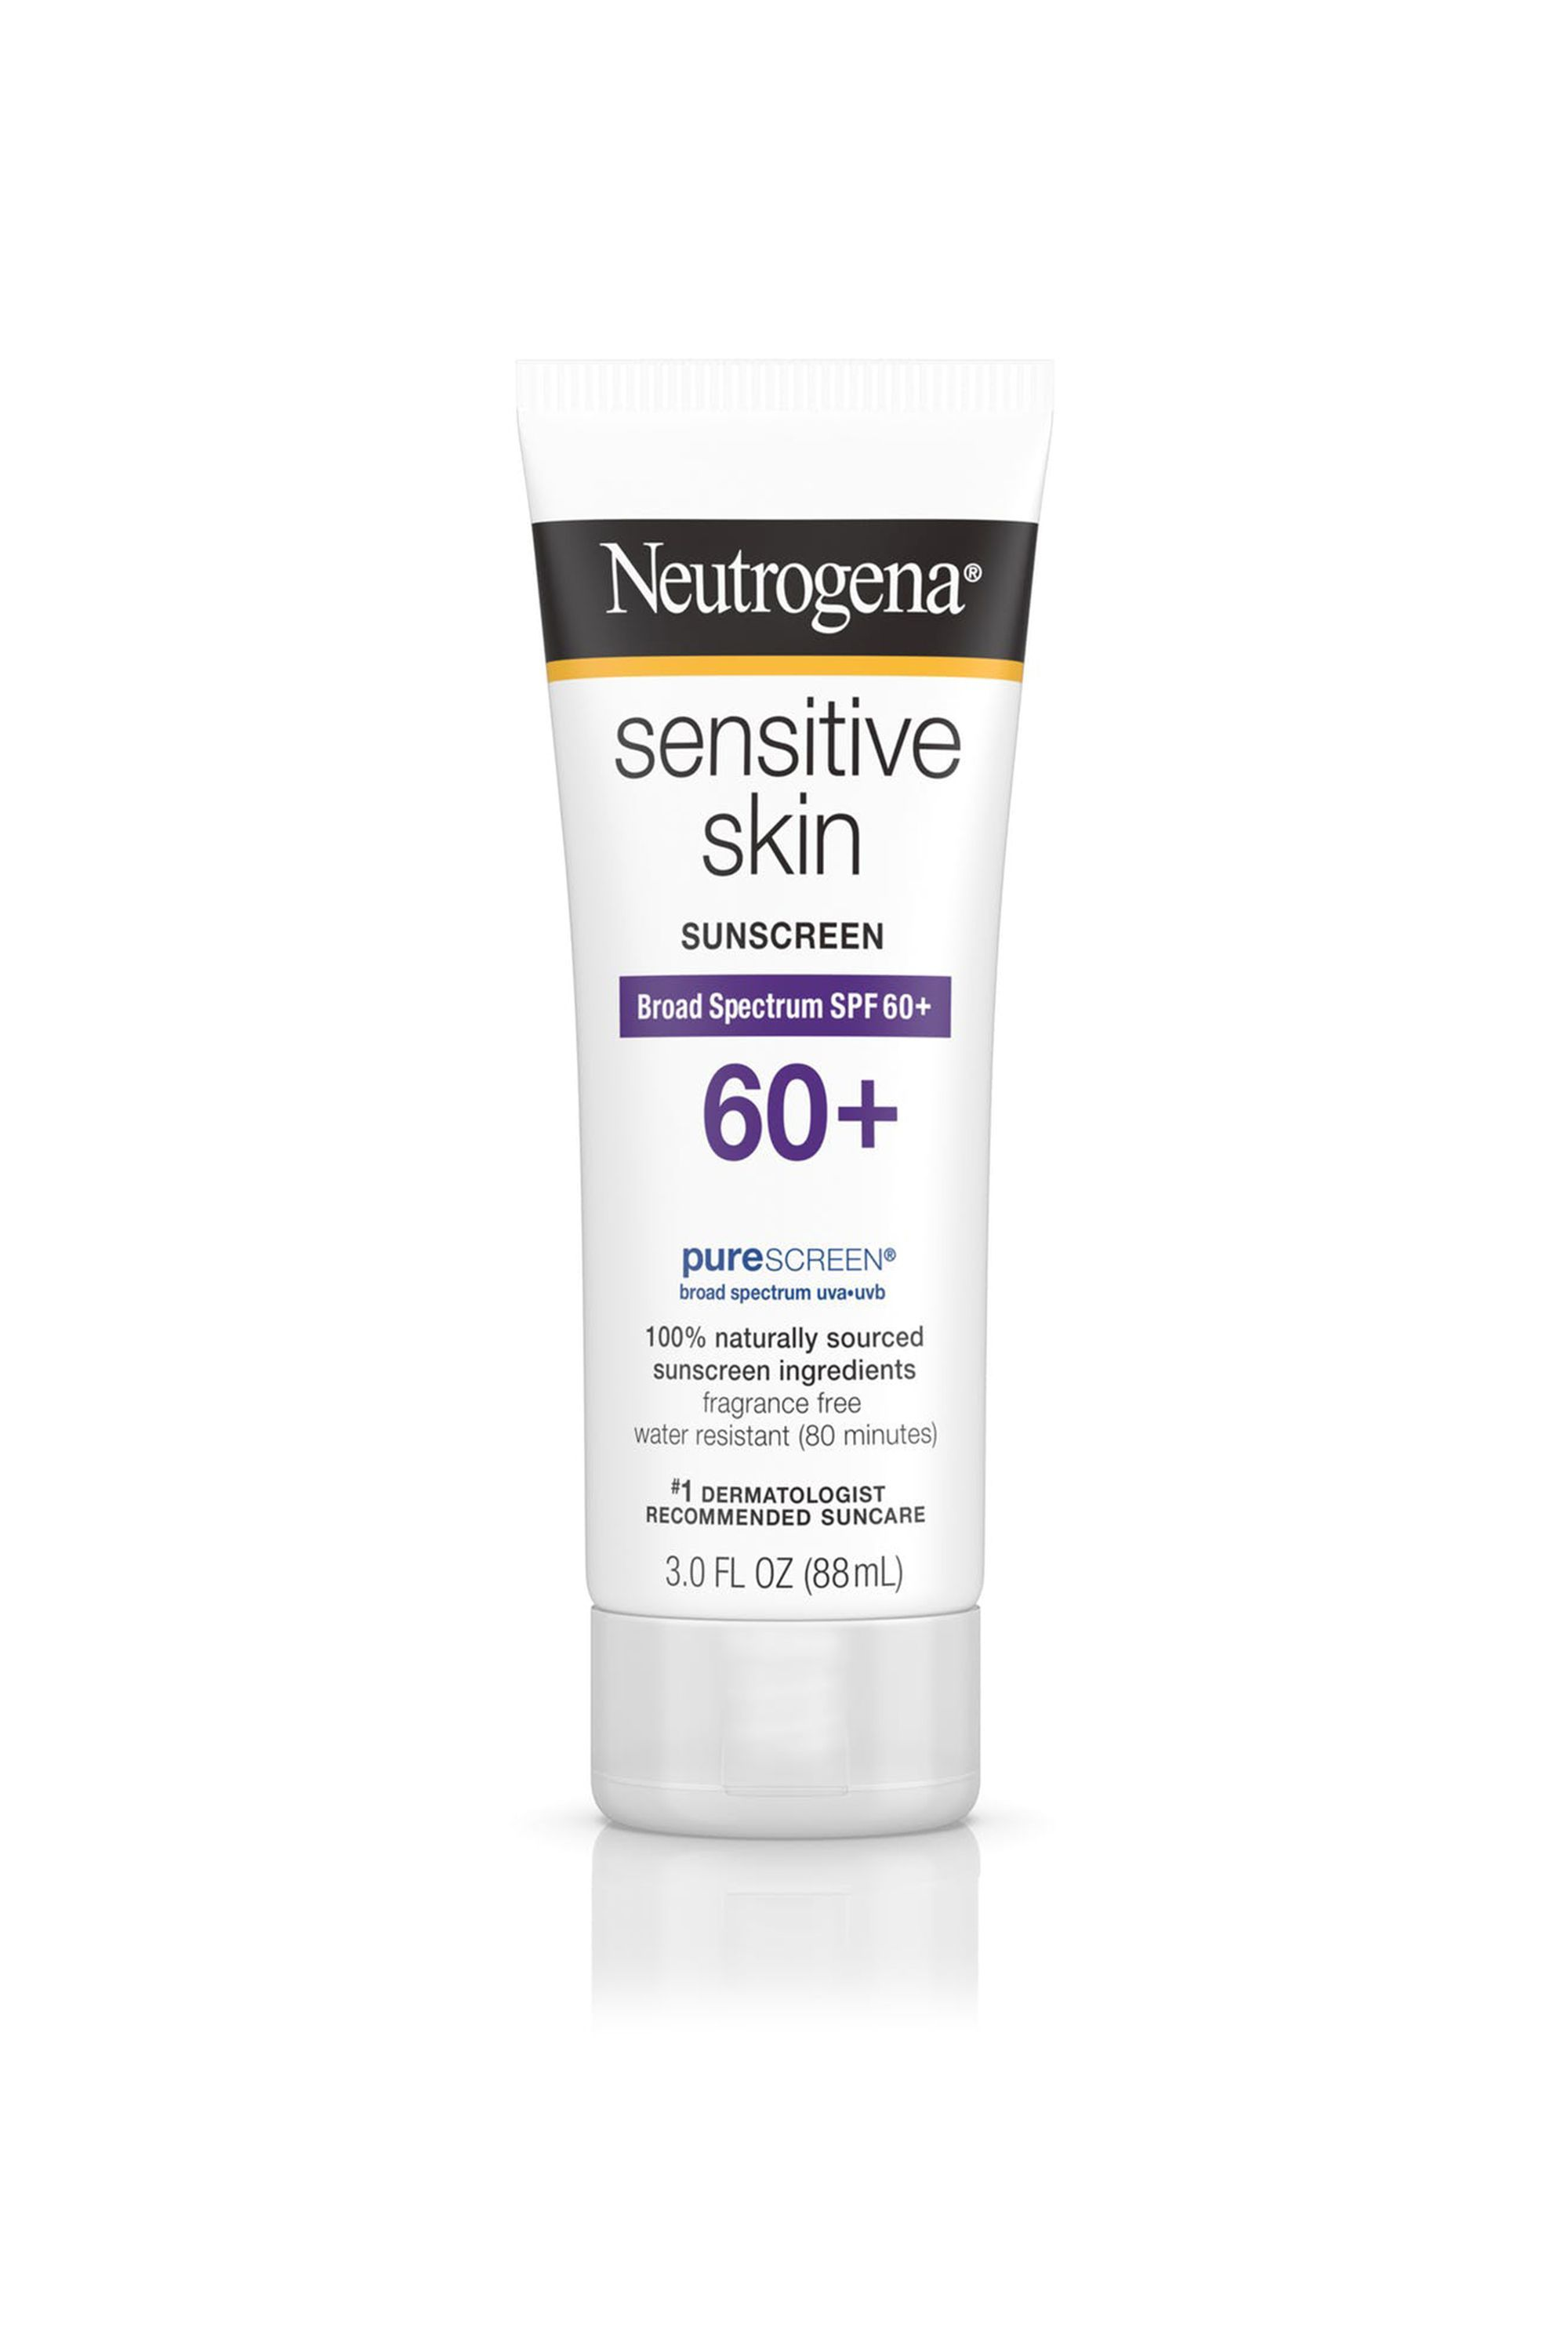 Neutrogena Sensitive Skin Sunblock Lotion SPF 60